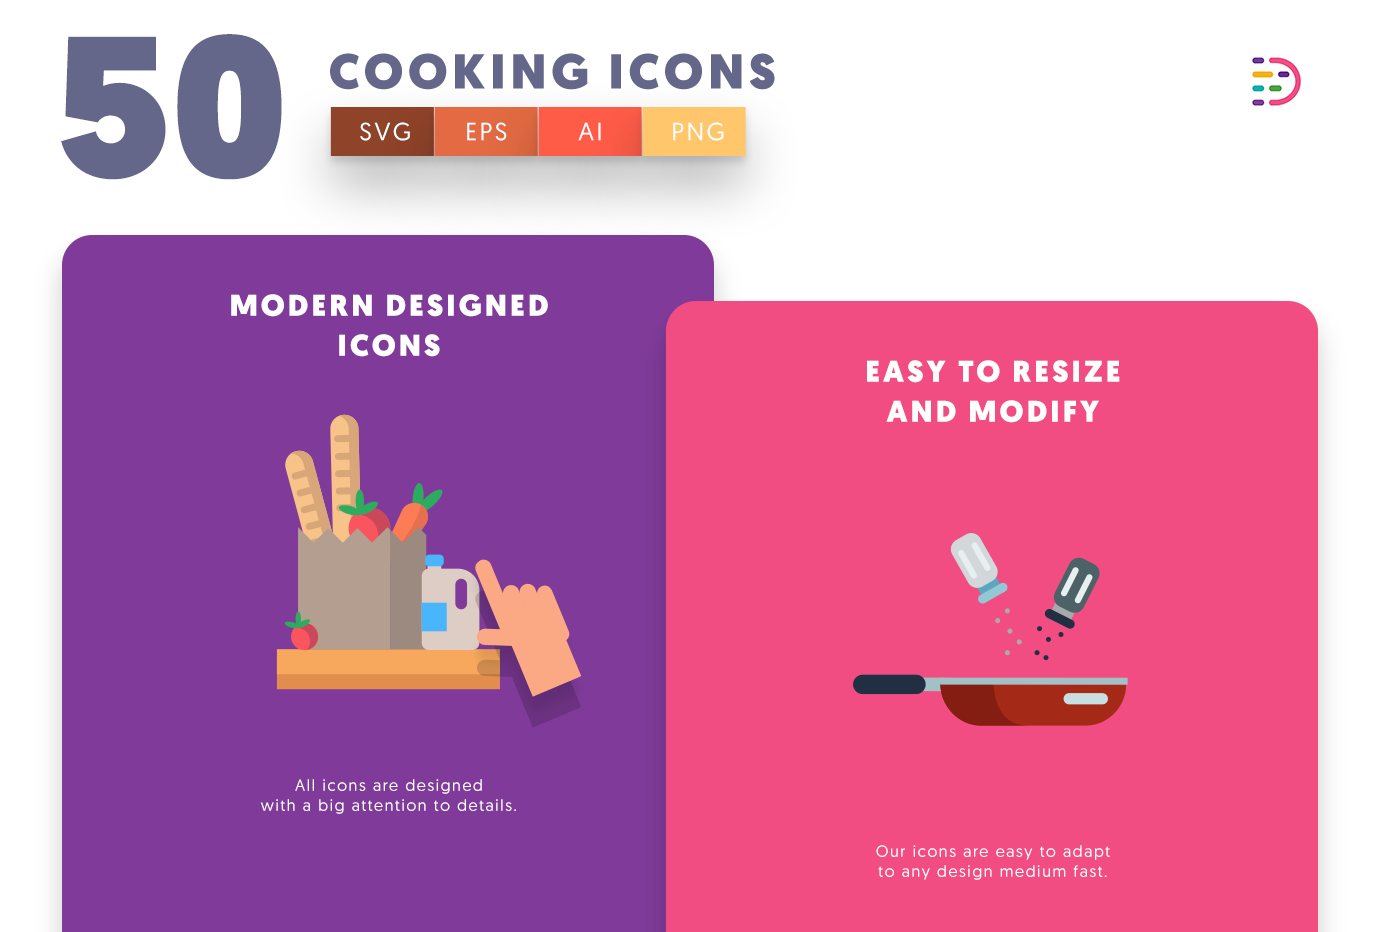 Cooking icons png/svg/eps